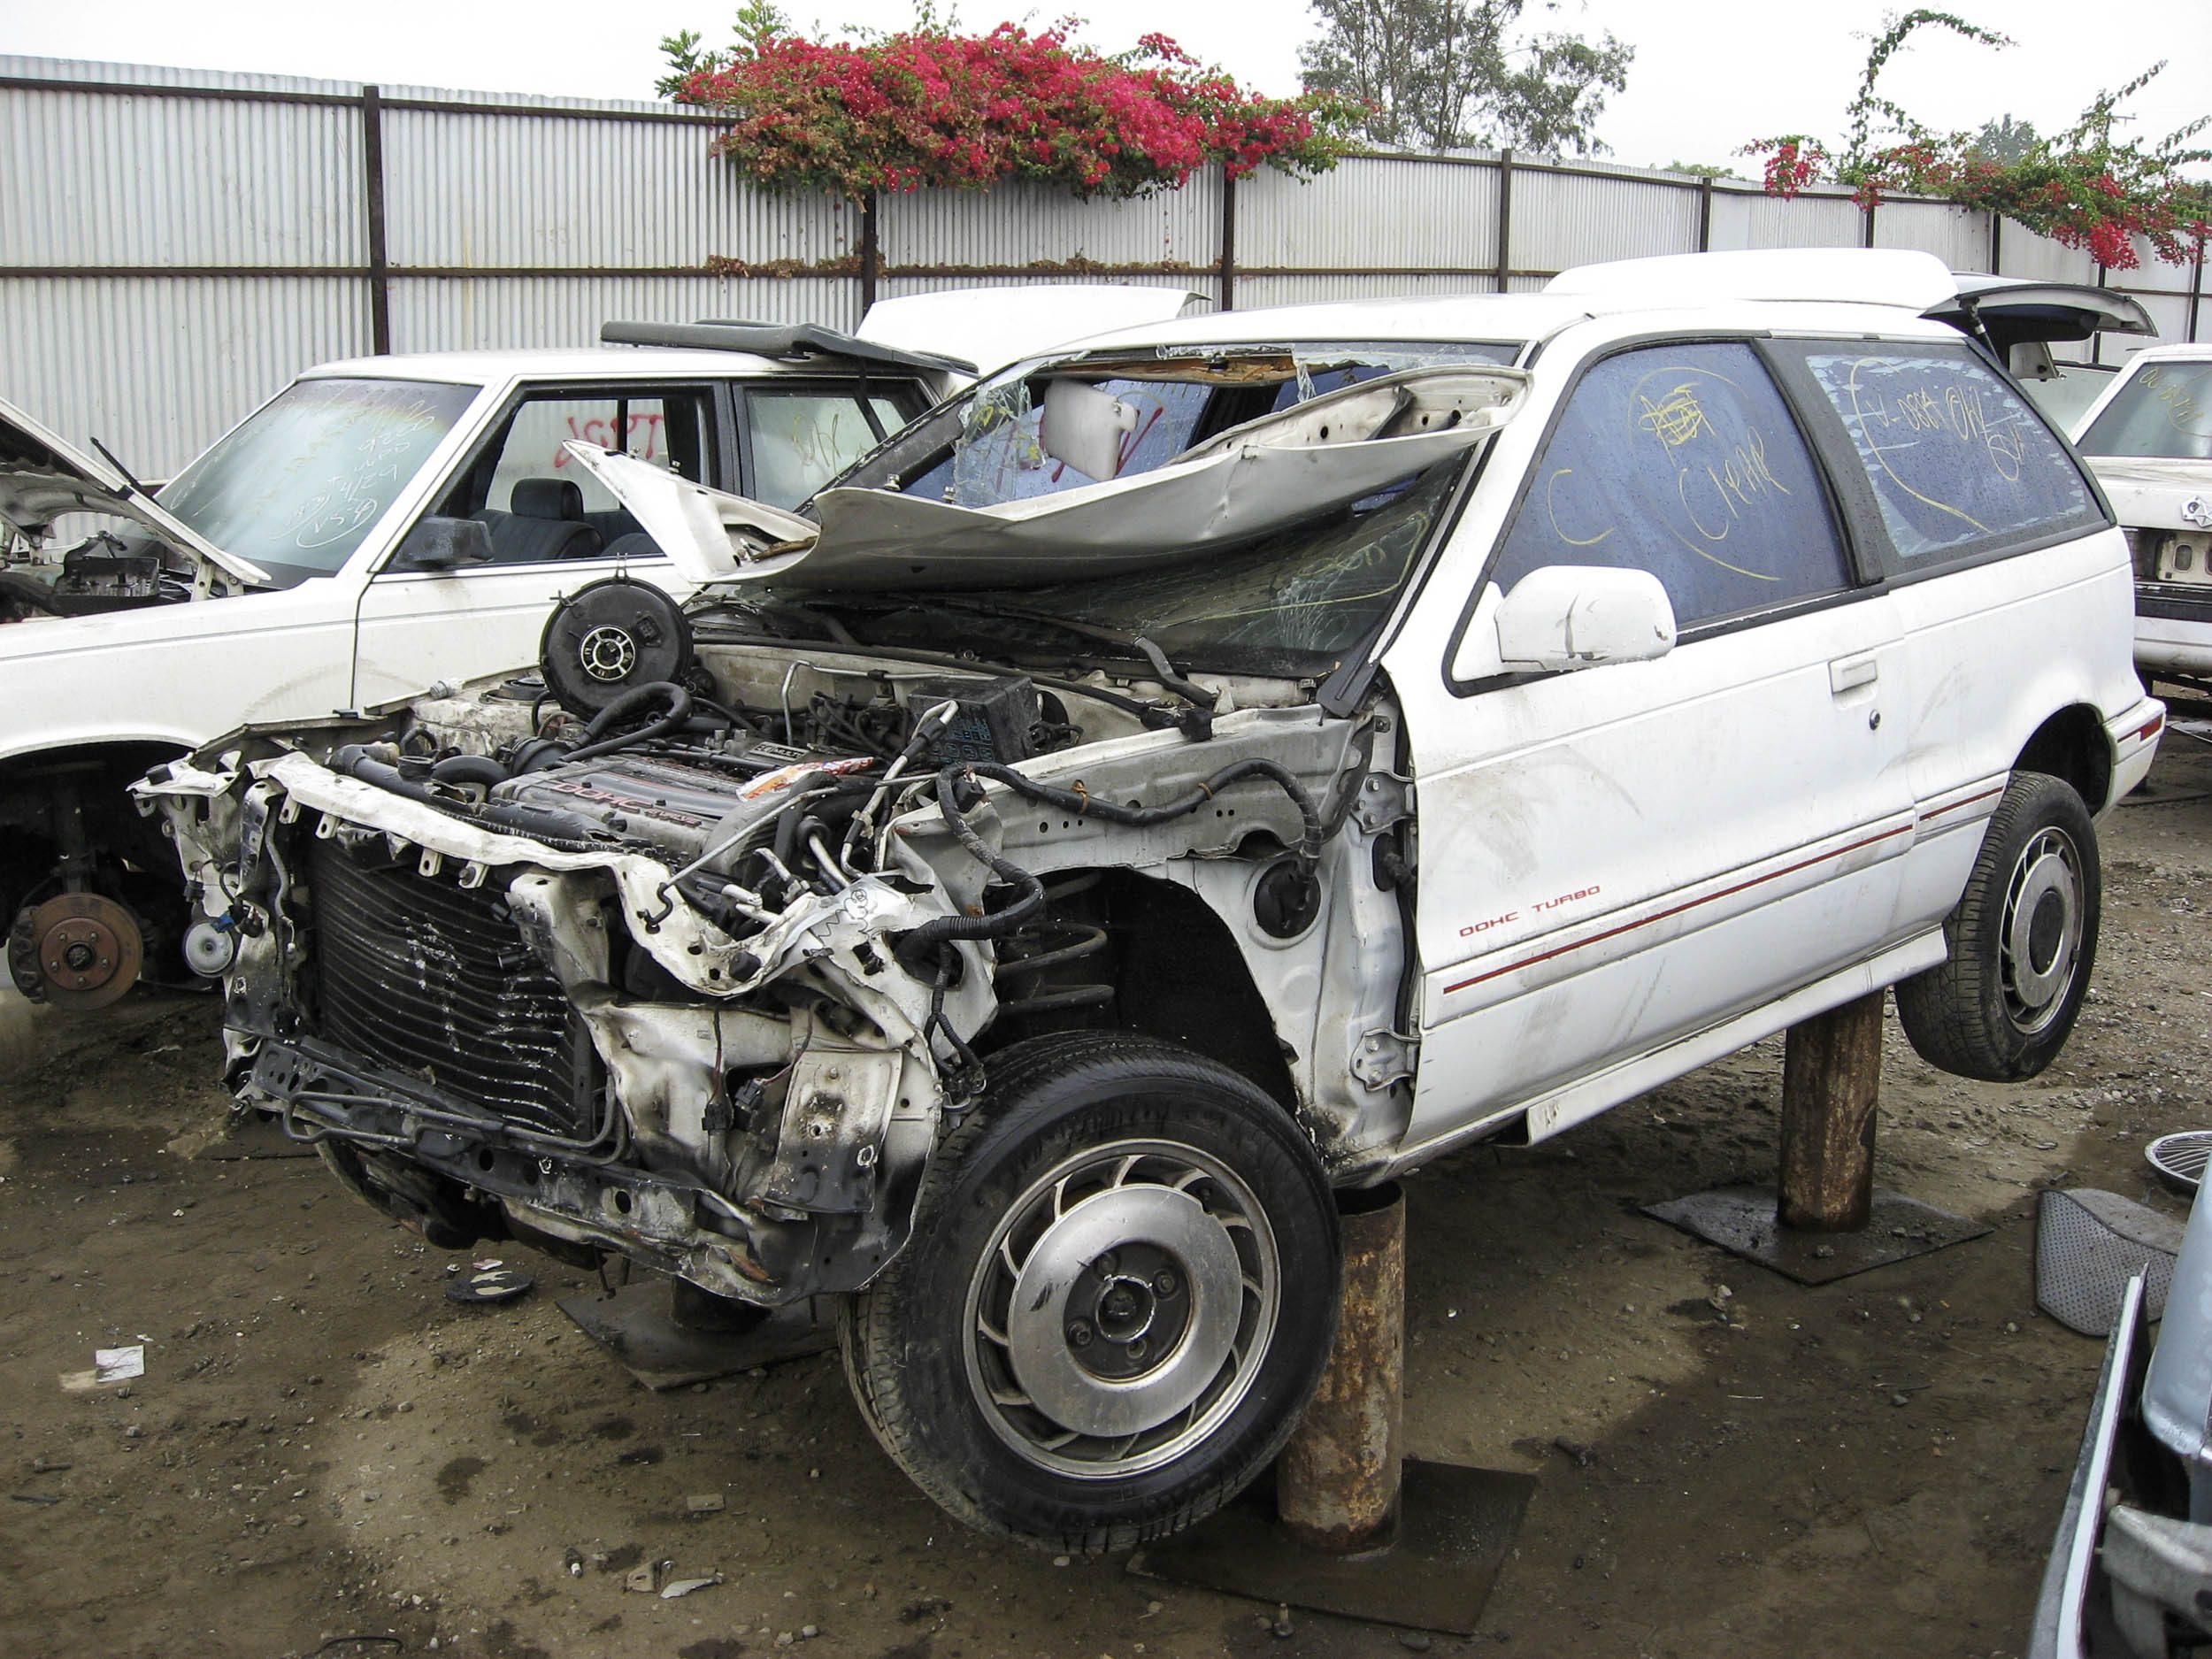 The self-service junkyard was the end of the line for this 1989 Dodge Colt turbo hatchback.